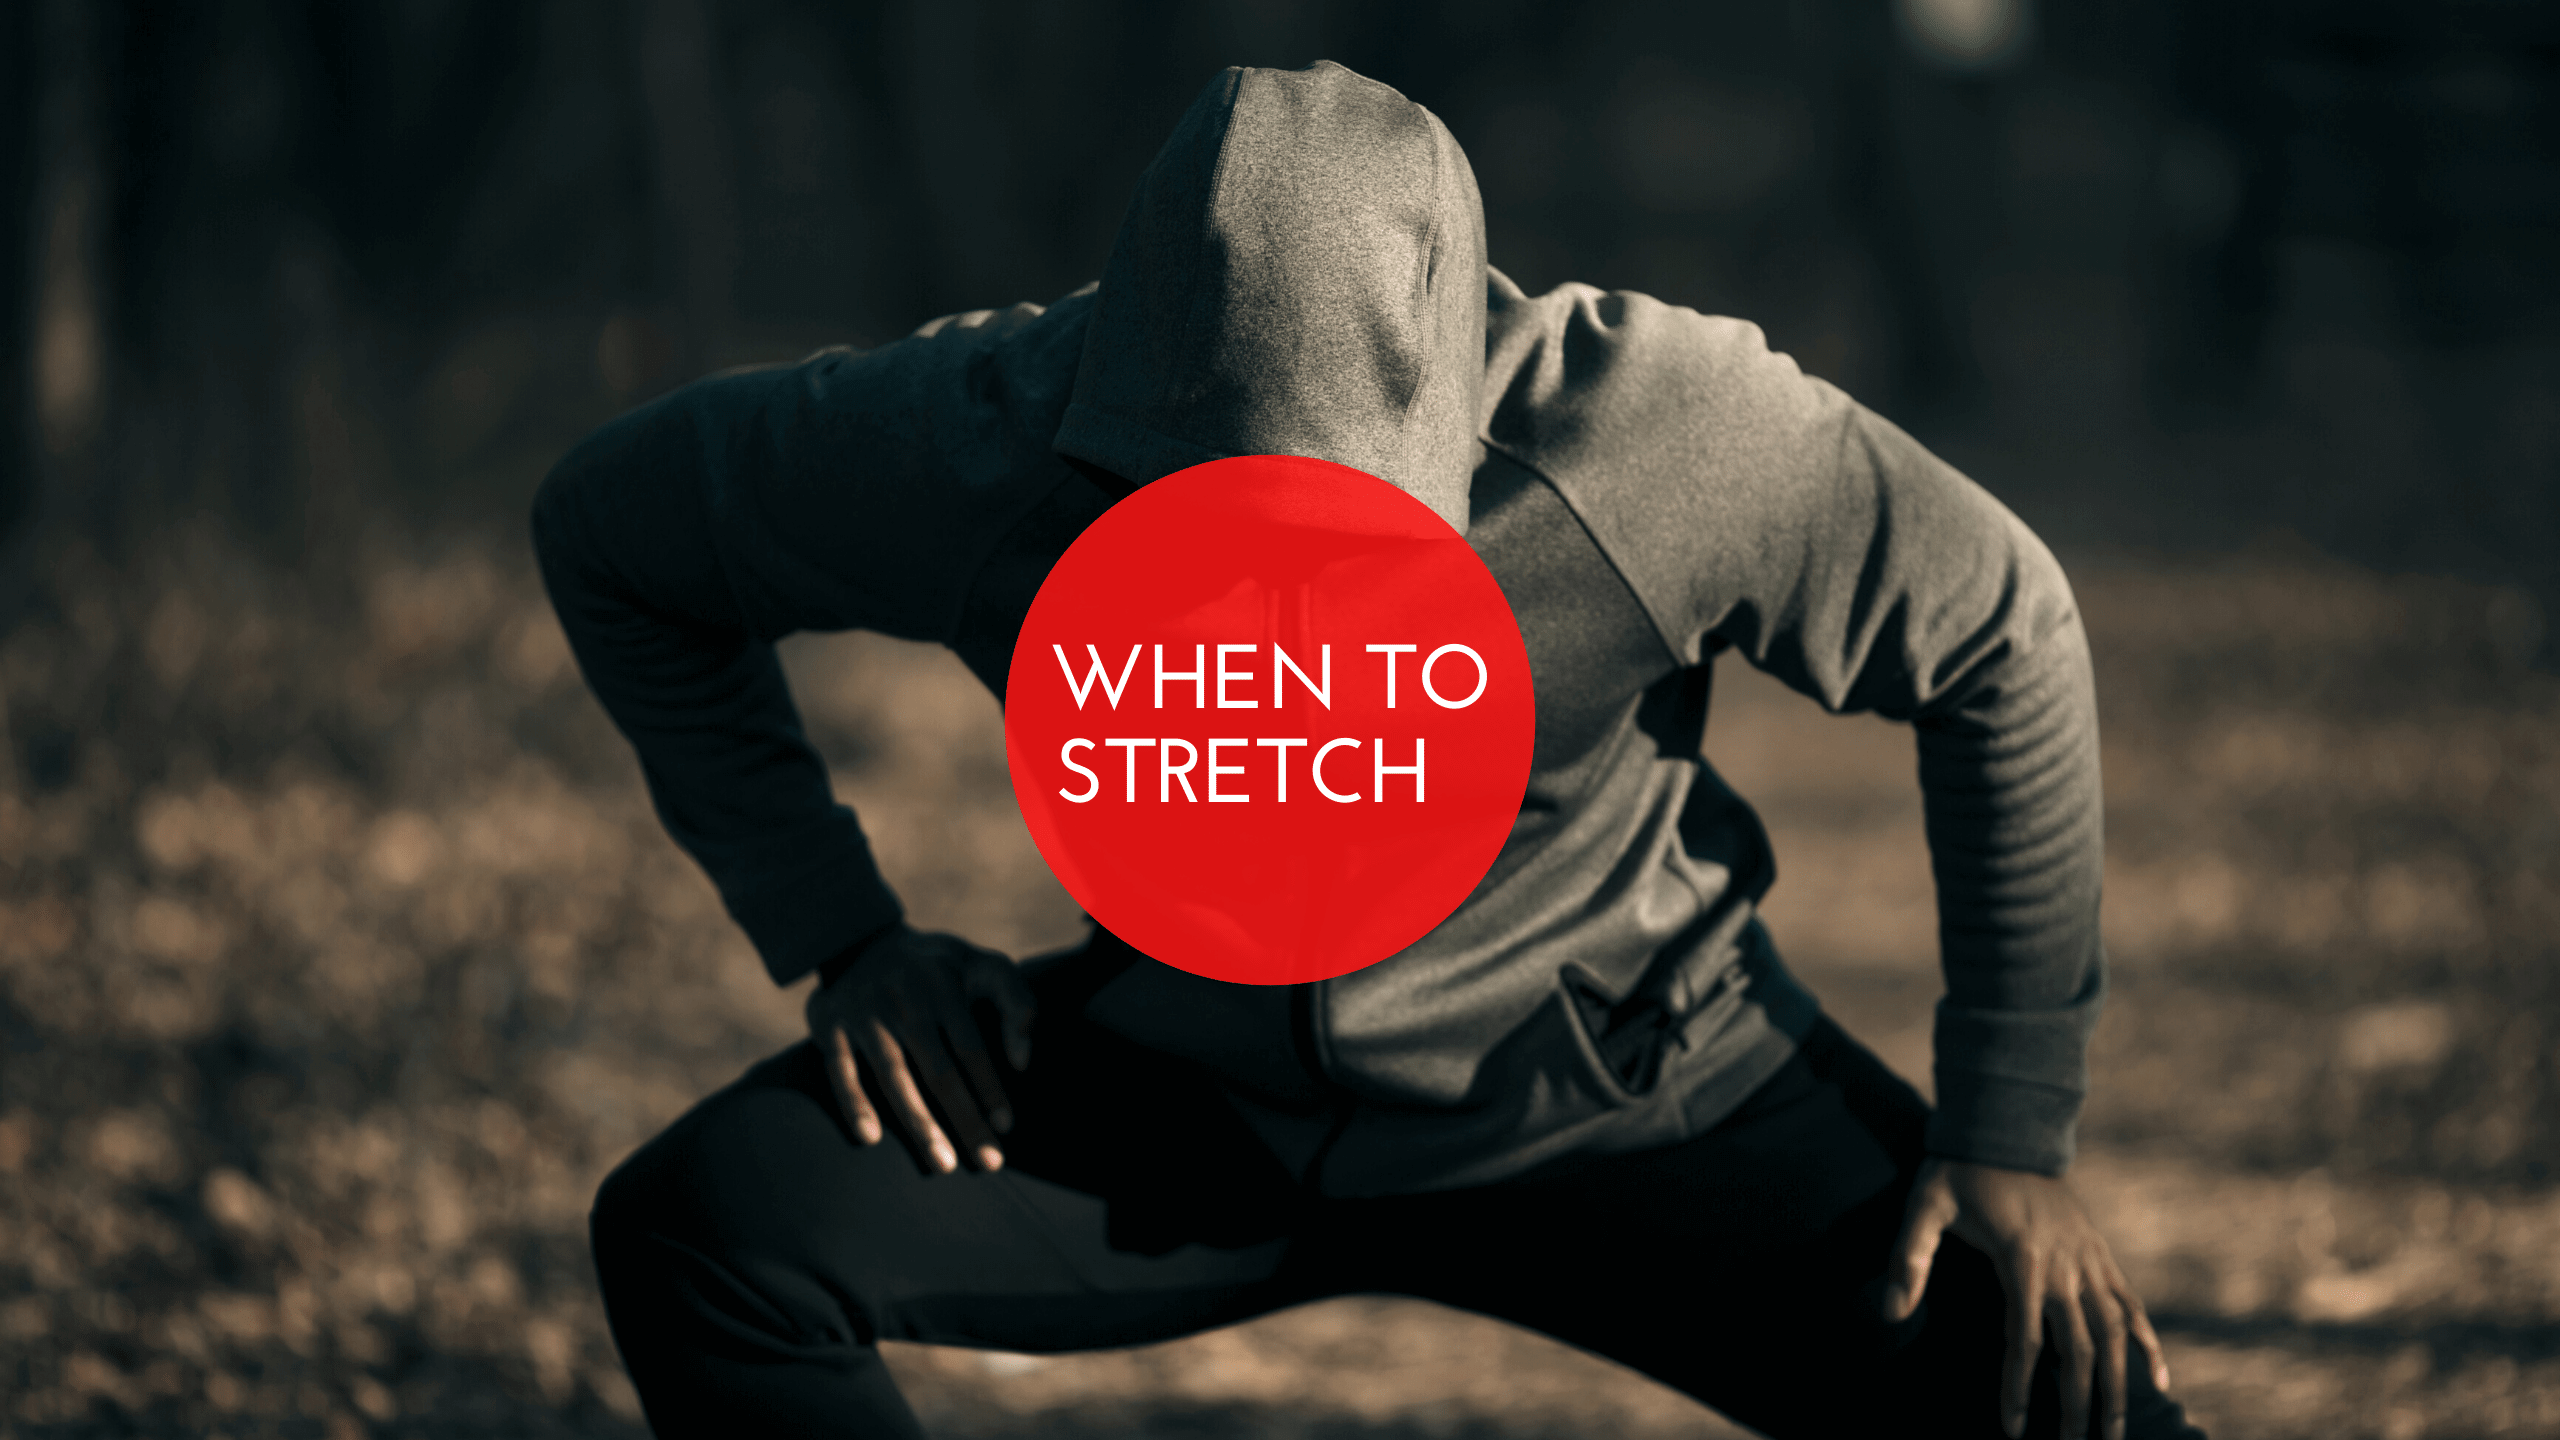 Should you warm up before stretching?